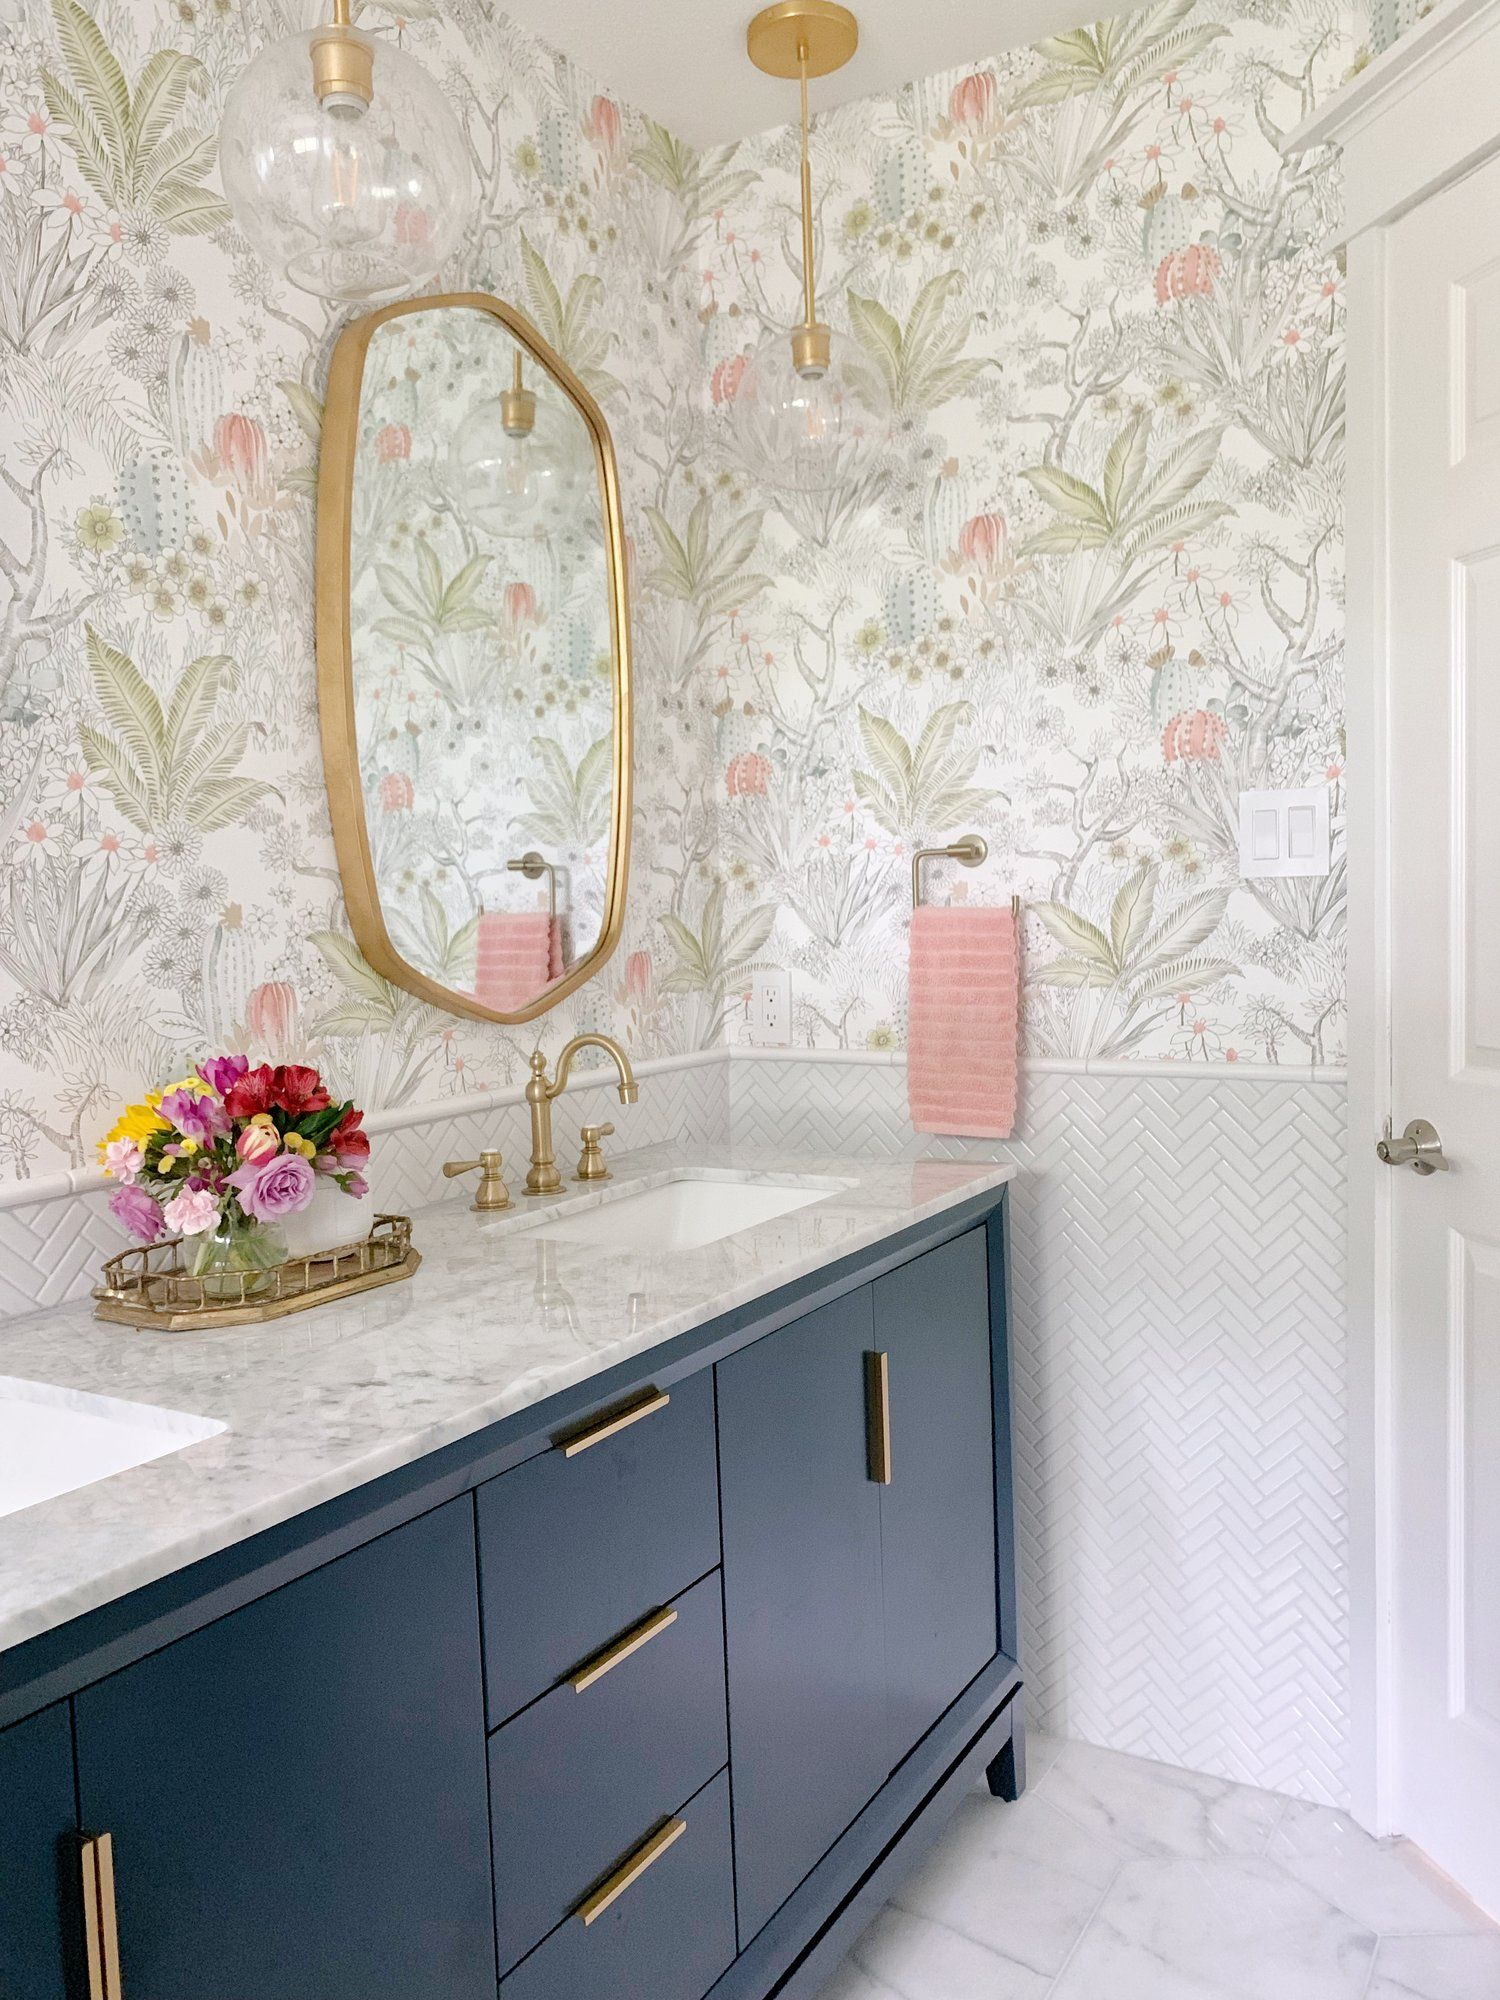 Girl S Bathroom Reveal One Room Challenge Spring 2019 Kristin Laing Design Girls Bathroom Bathroom Inspiration Bathroom Design